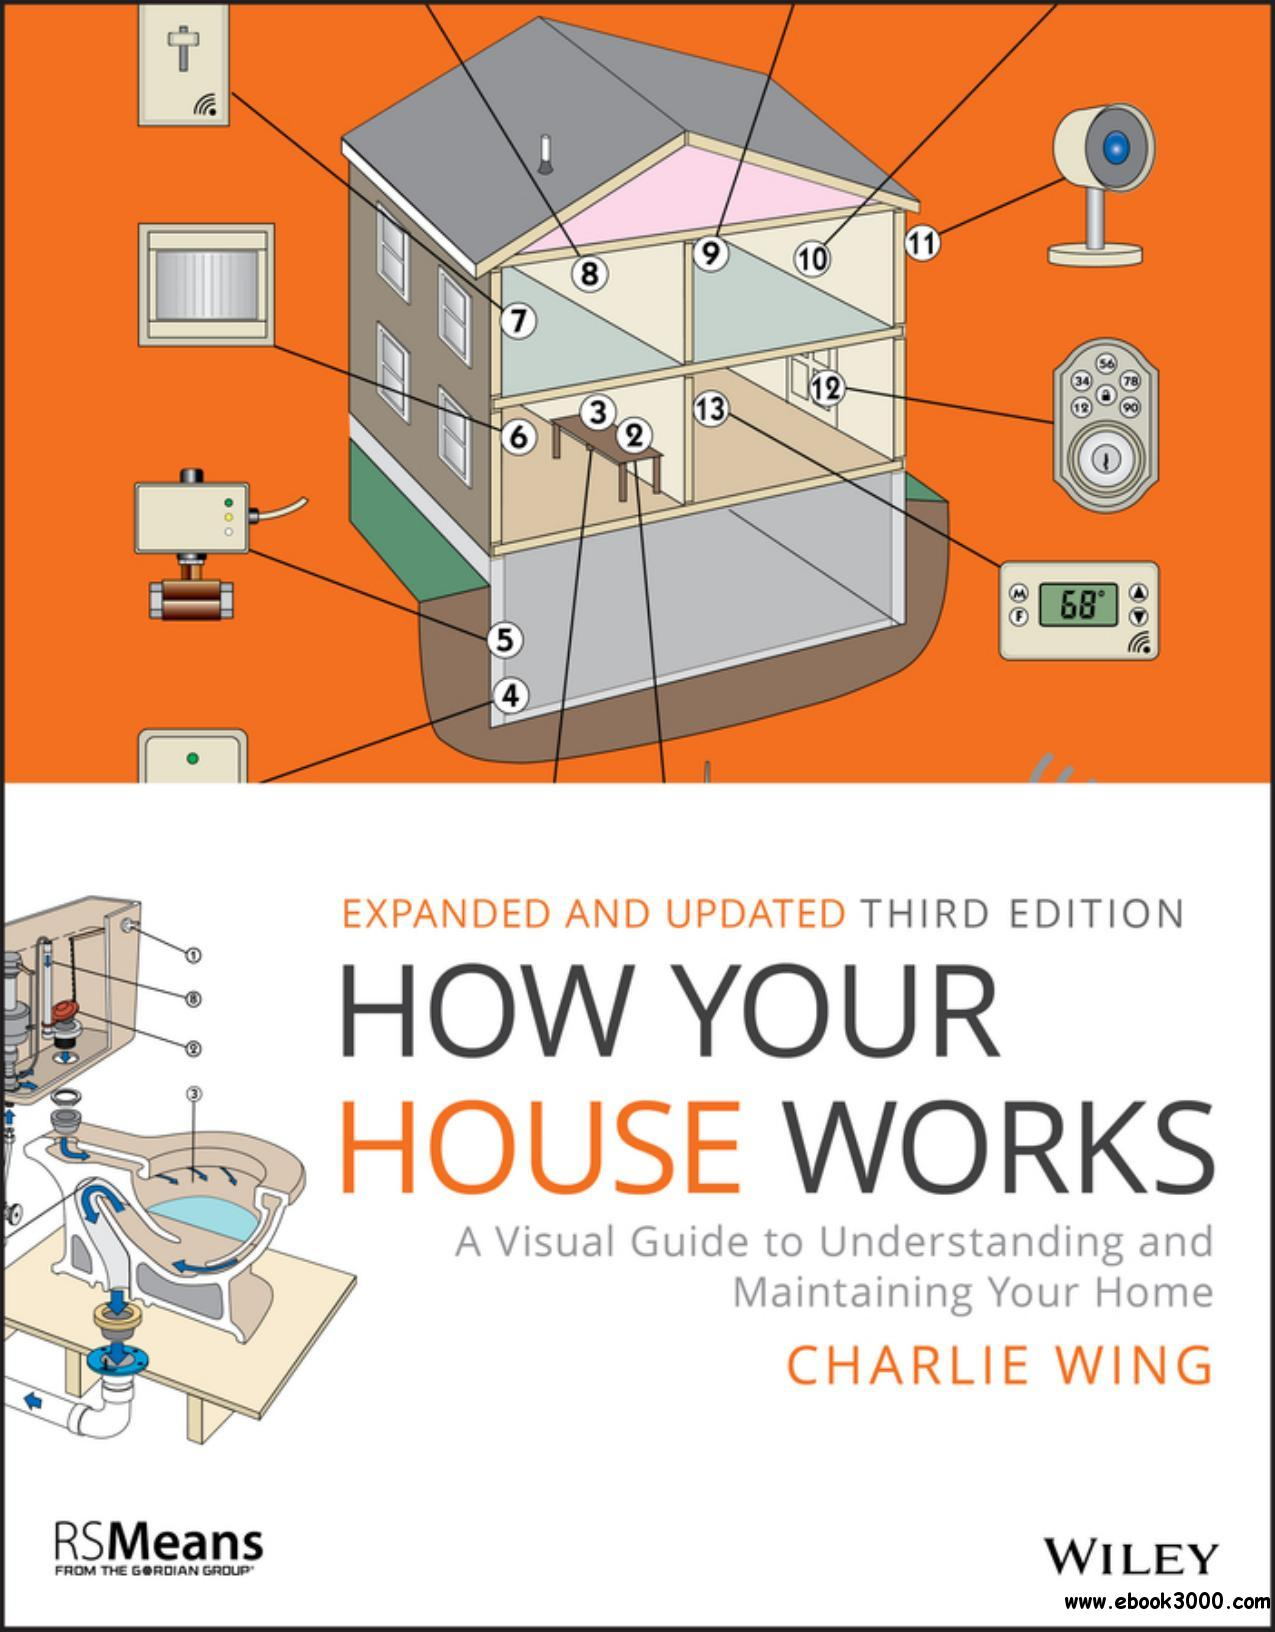 How Your House Works: A Visual Guide to Understanding and Maintaining Your Home (RSMeans), 3rd Edition